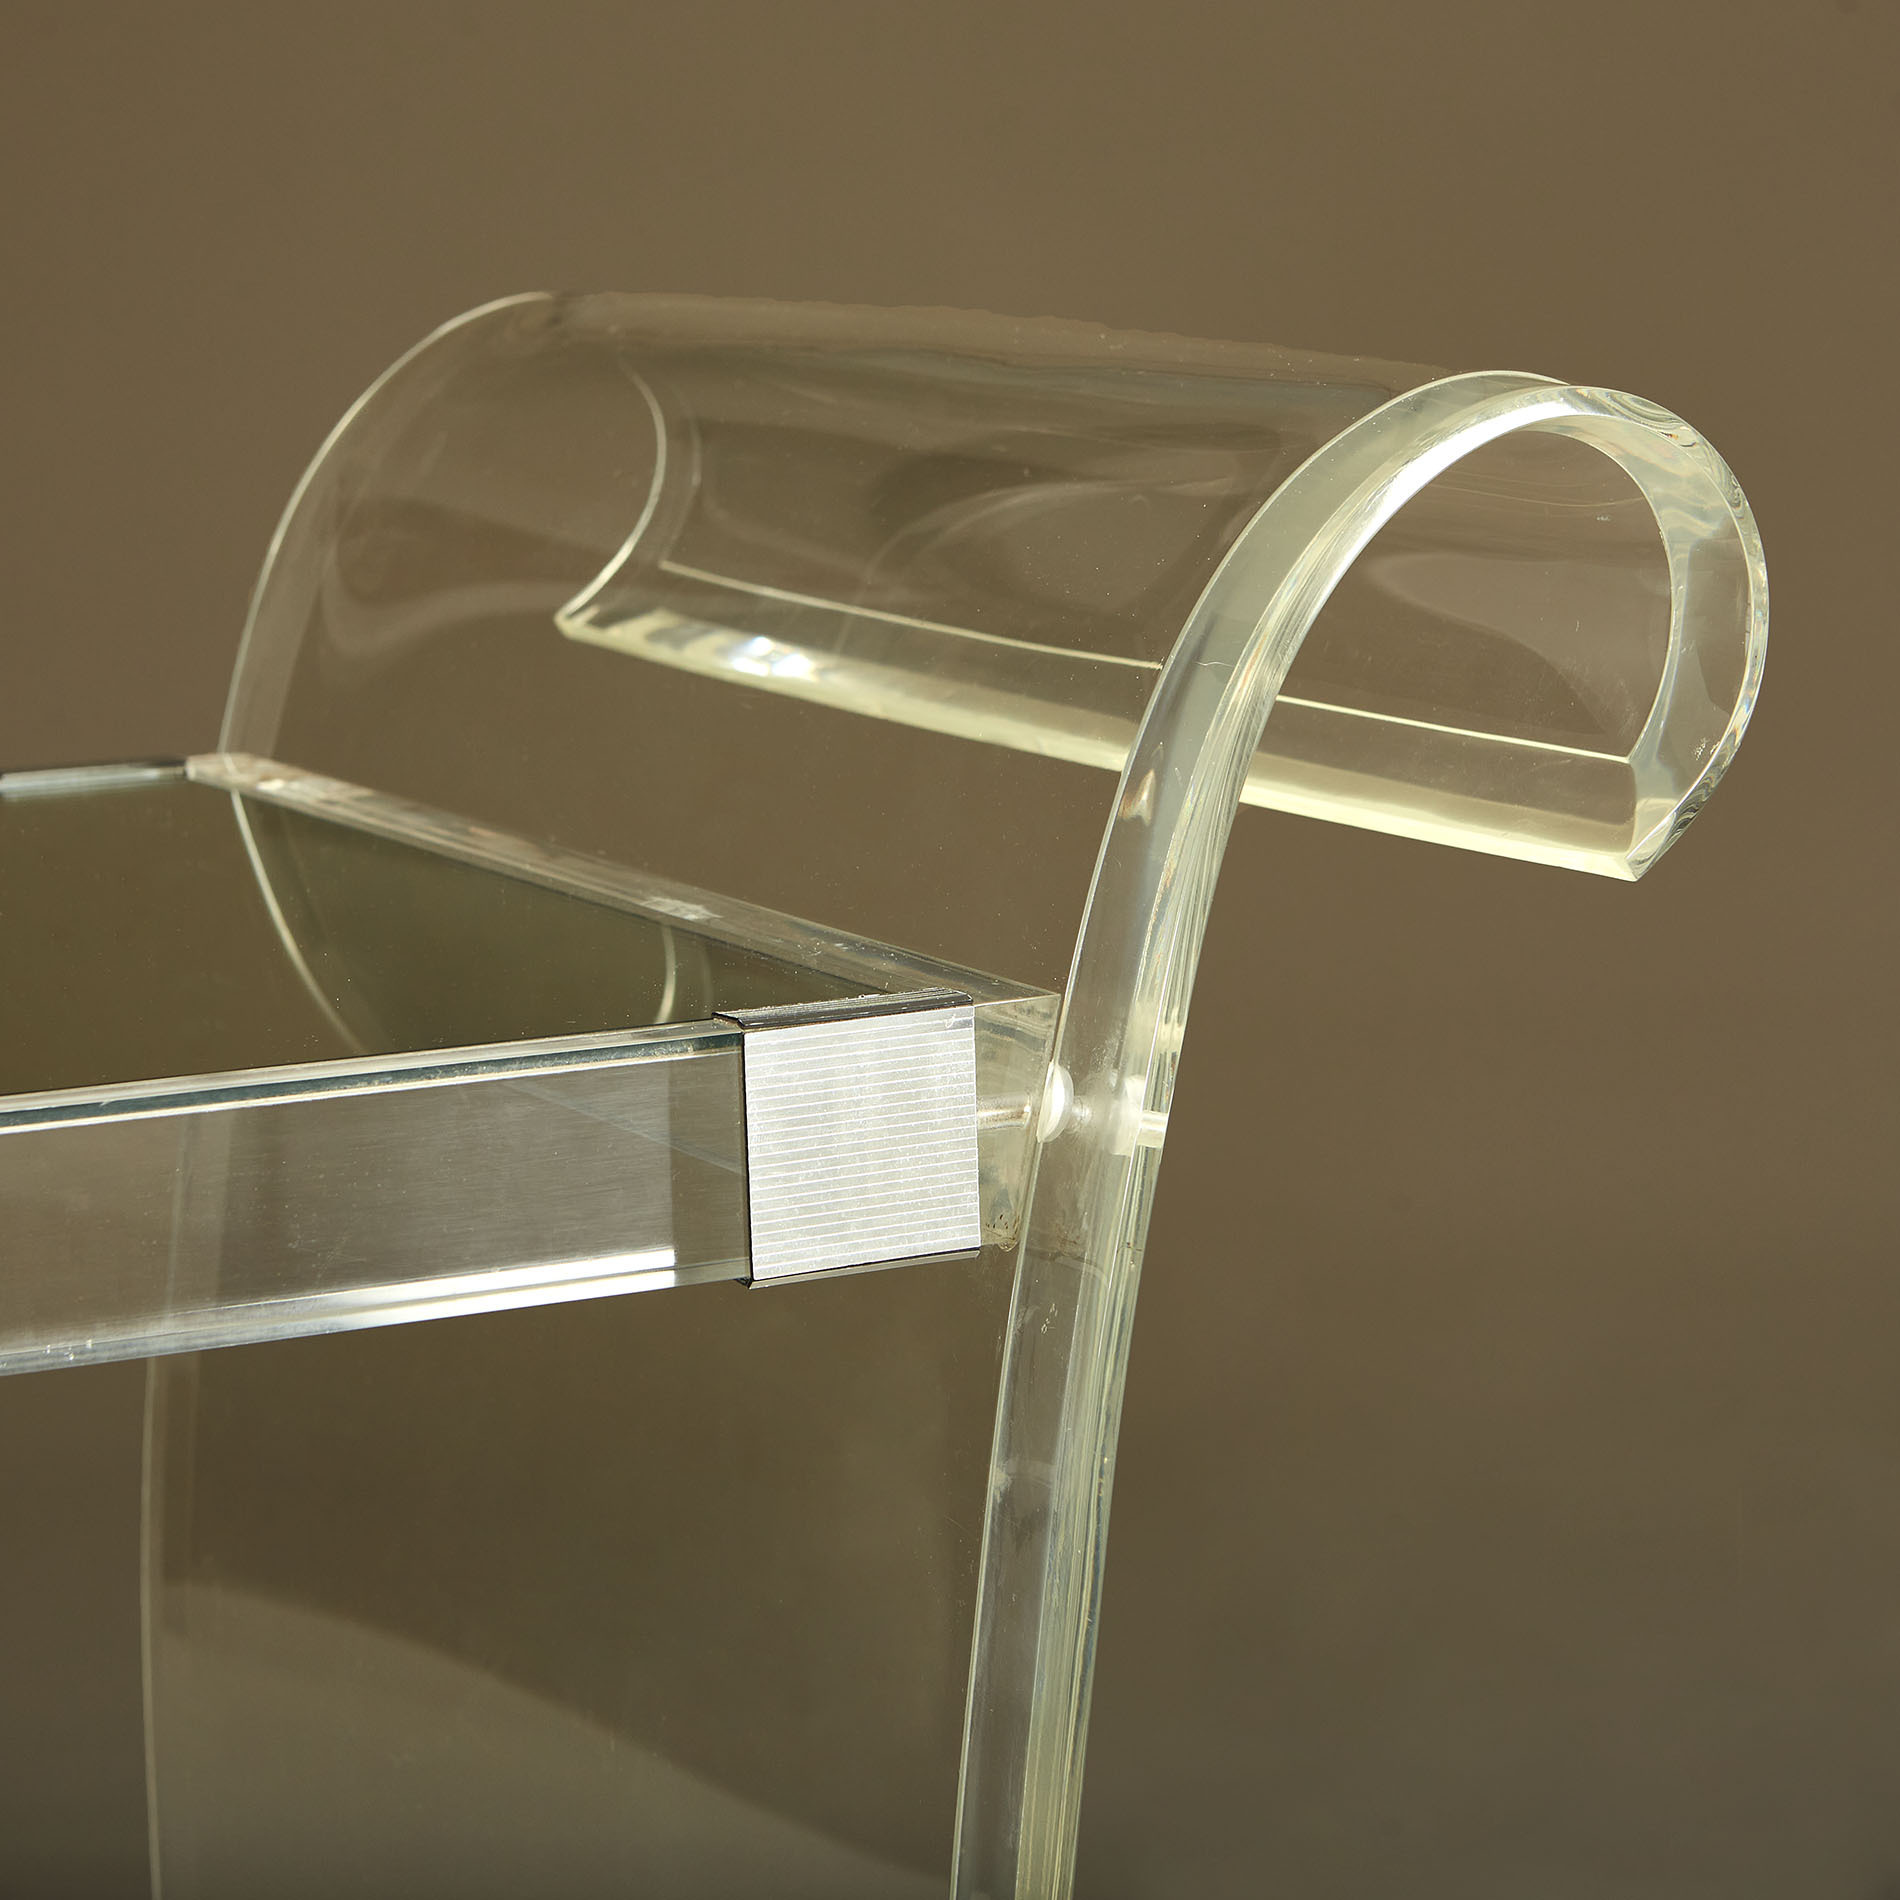 Us Lucite Drinks Trolley 20210225 Valerie Wade 3 146 V1